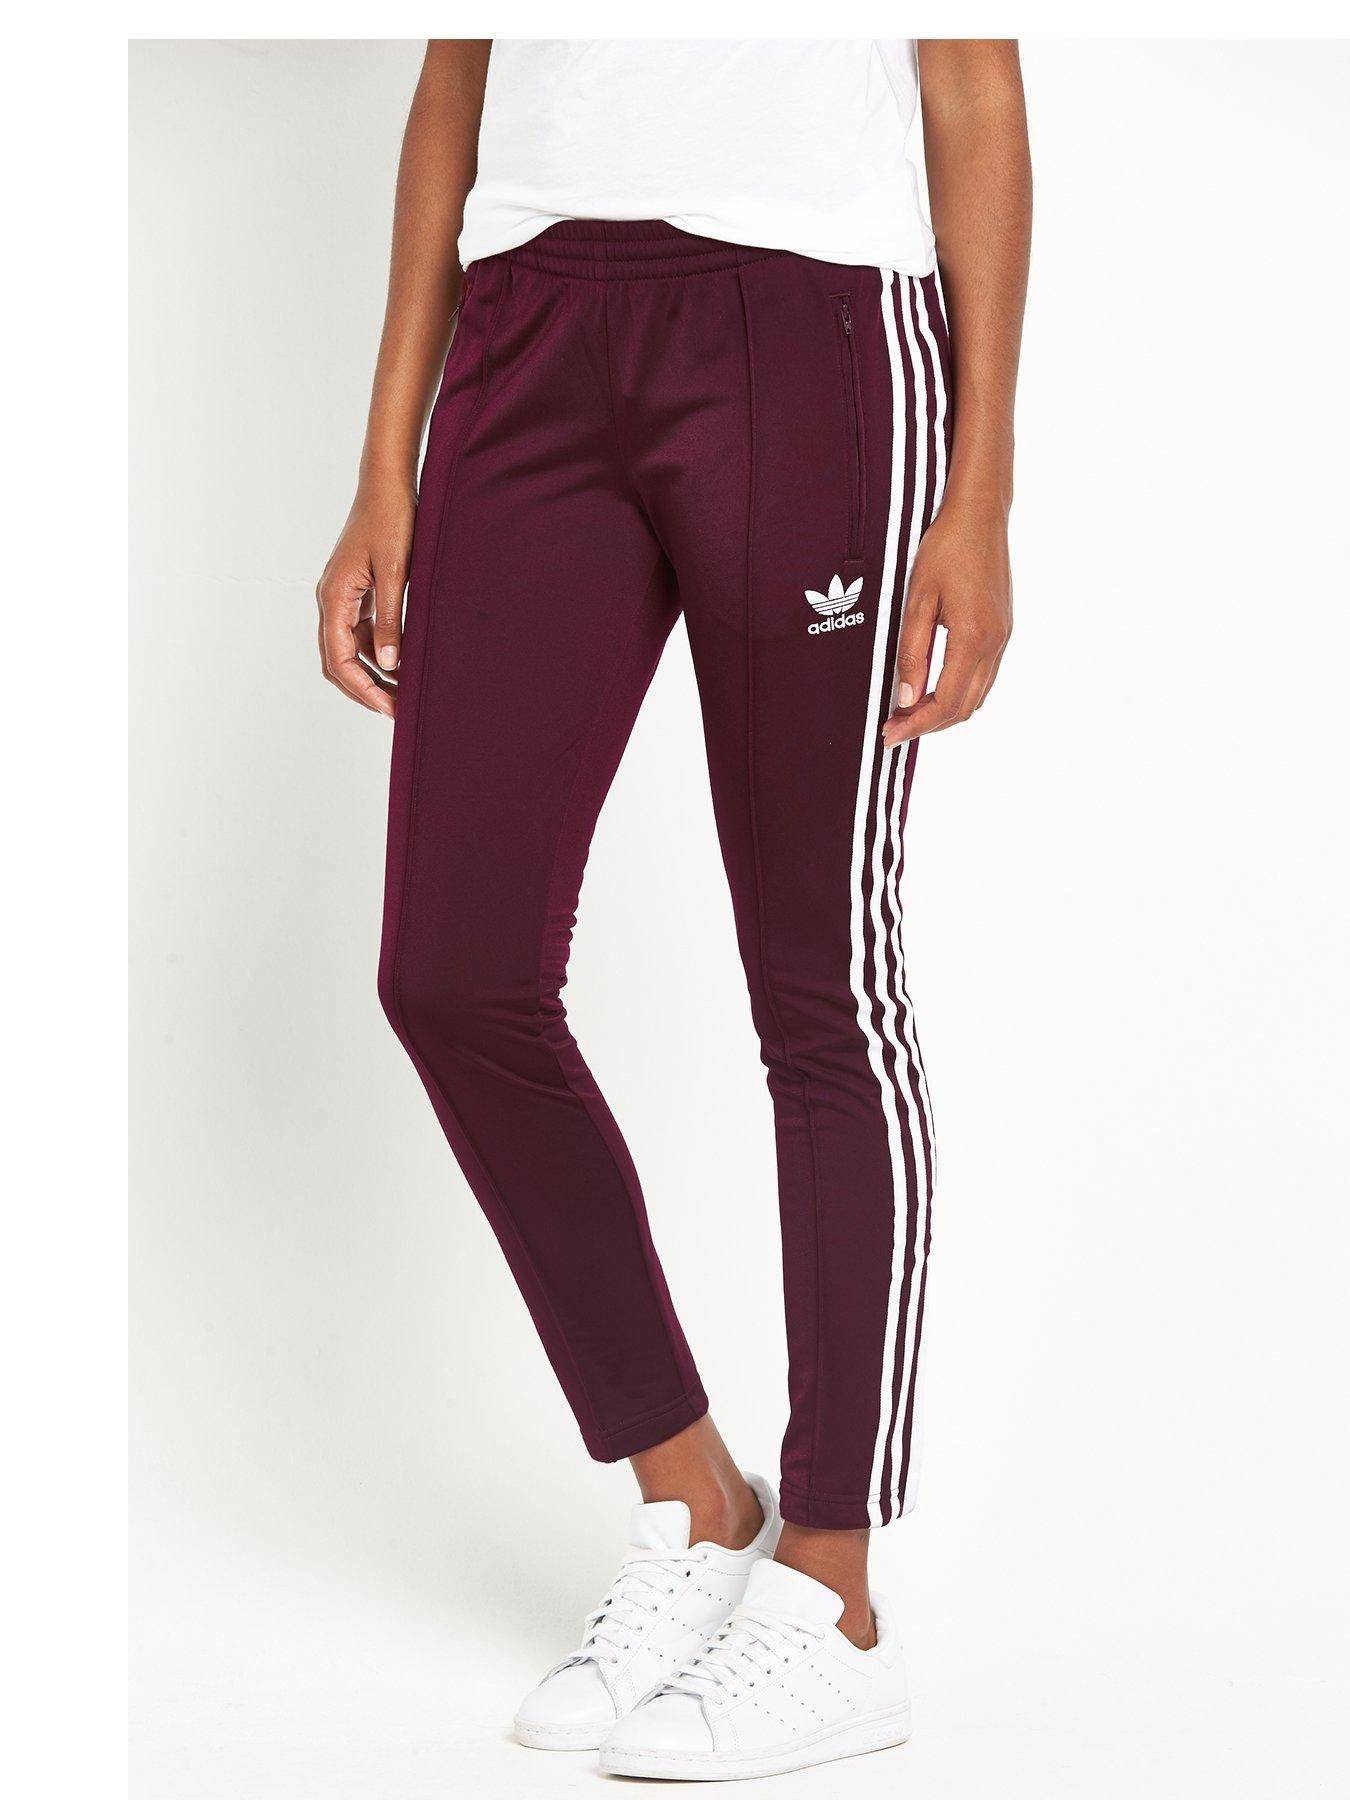 6c3208c612a91 adidas Originals Superstar Track Pants - Maroon An iconic design is given a  fresh coat of paint for the colder months with the rich maroon hue of these  ...